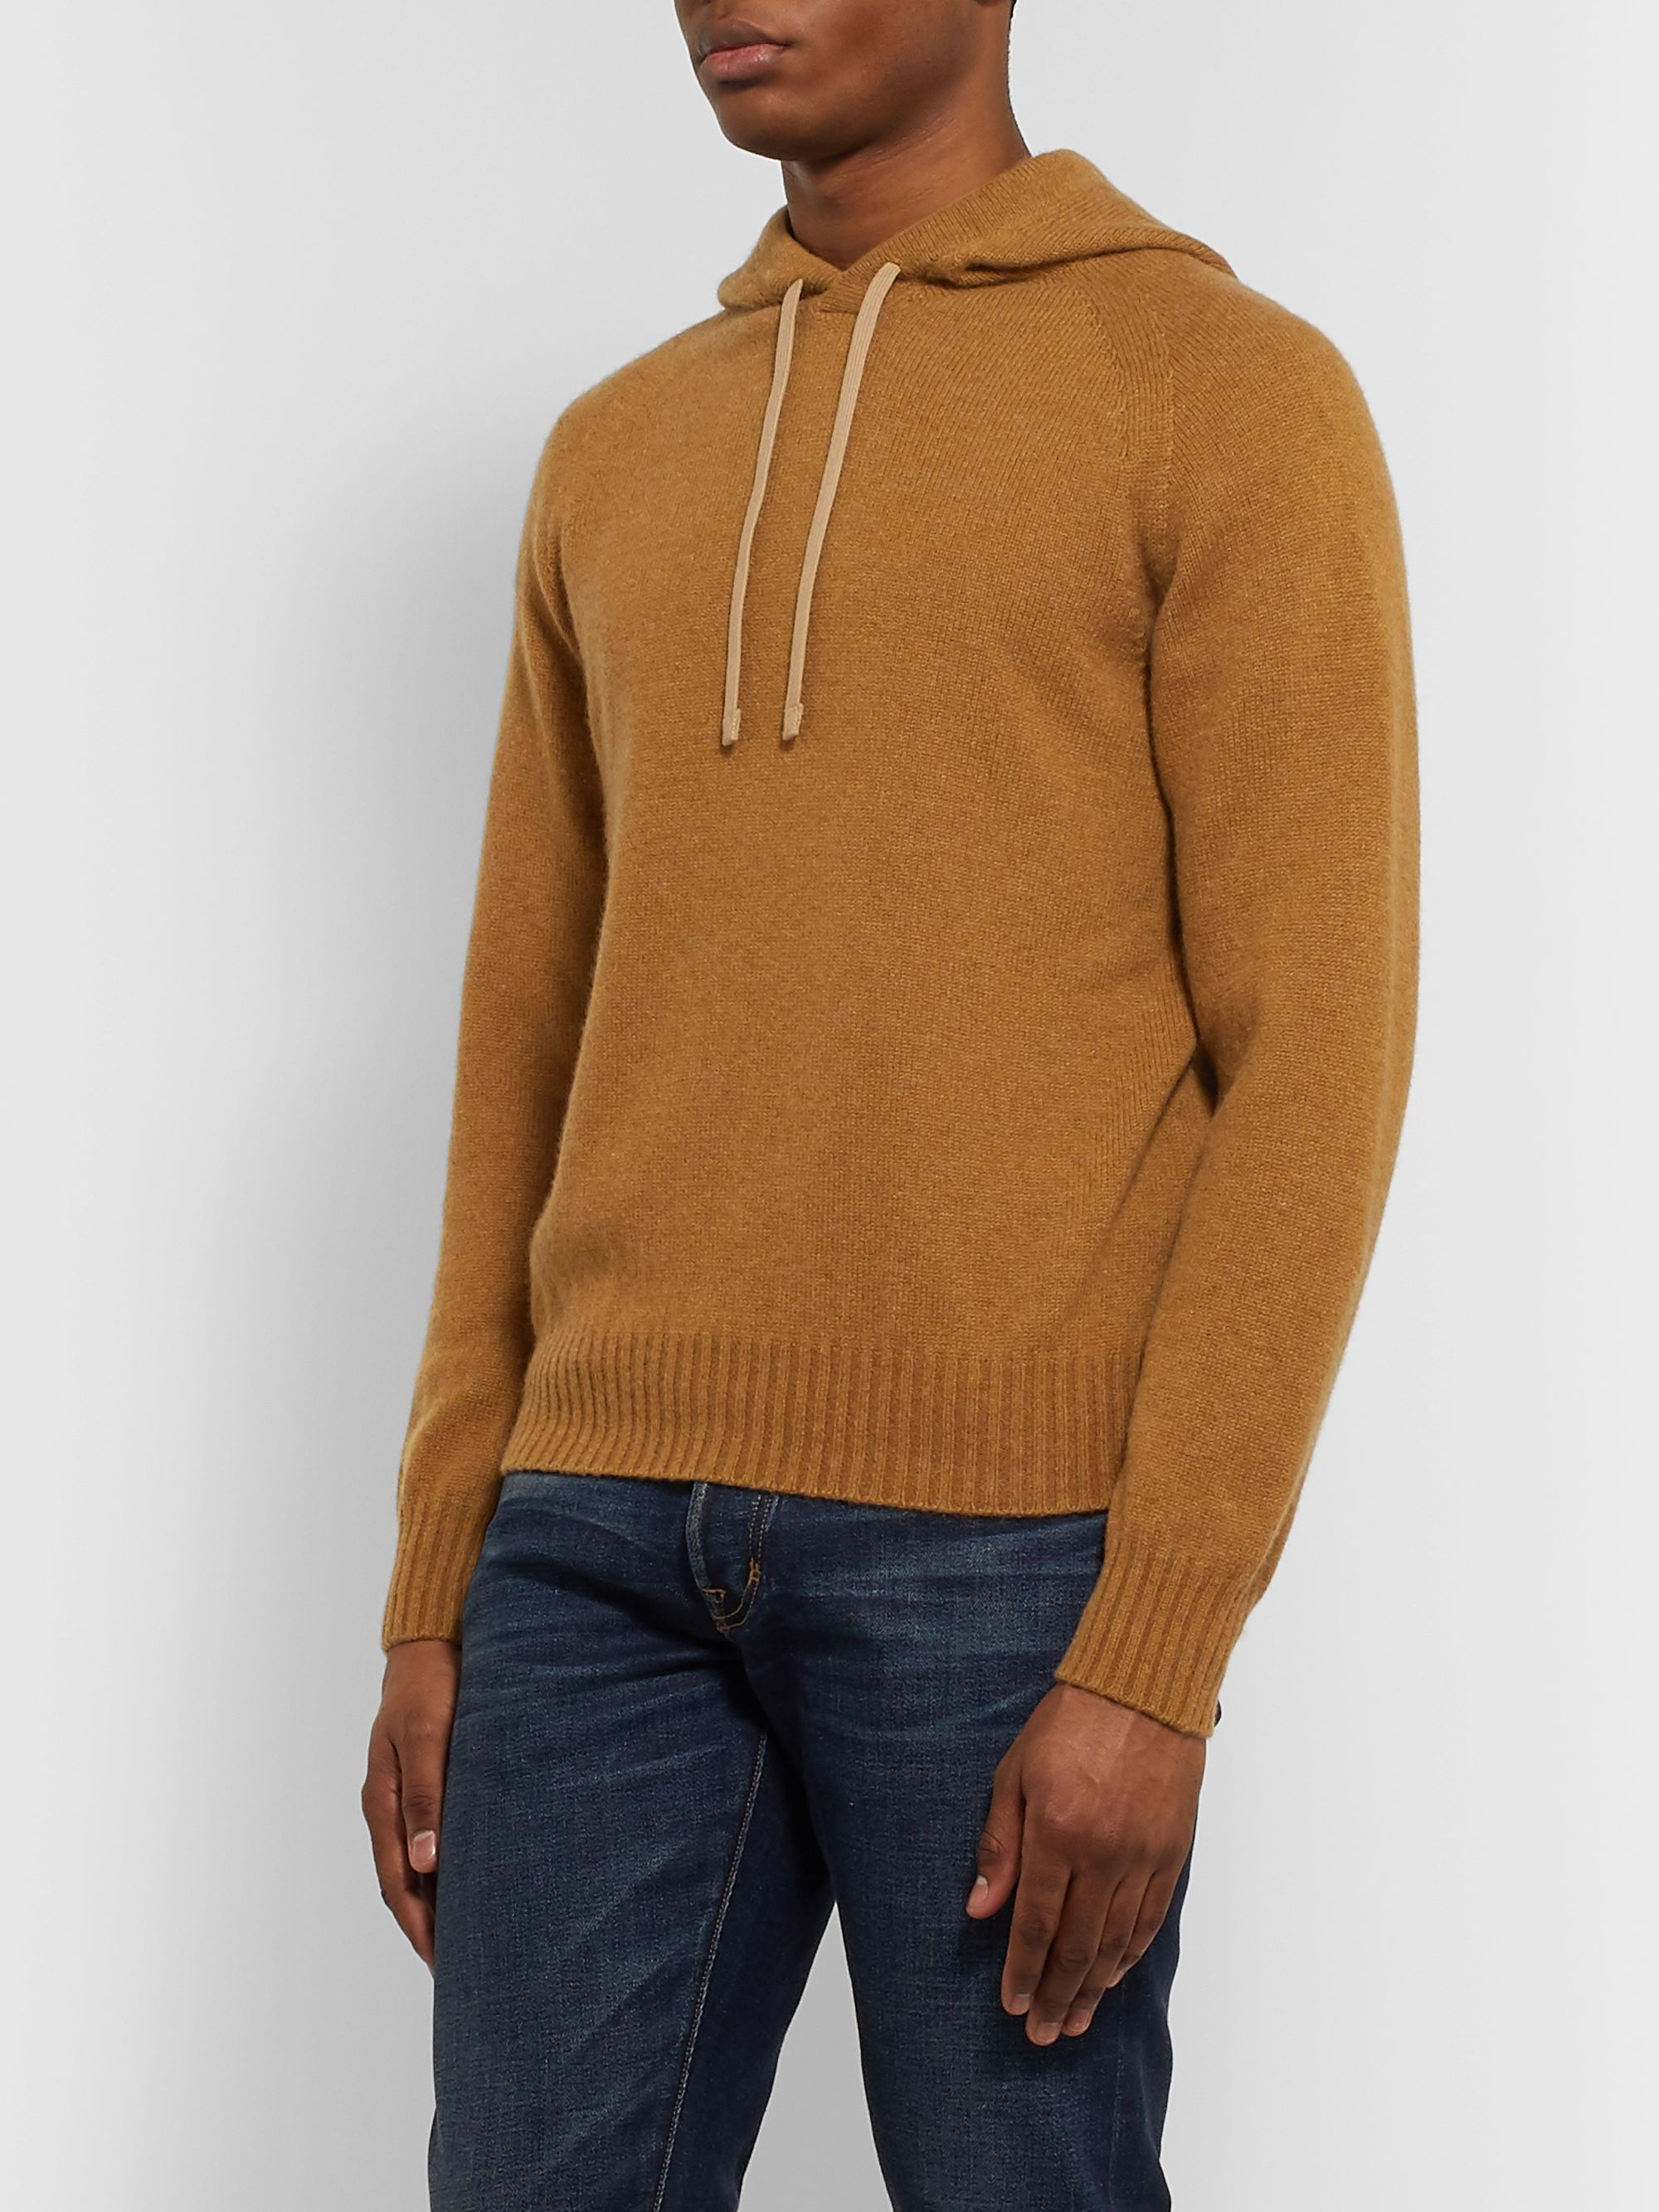 TOM FORD Slim-Fit Cashmere Hoodie